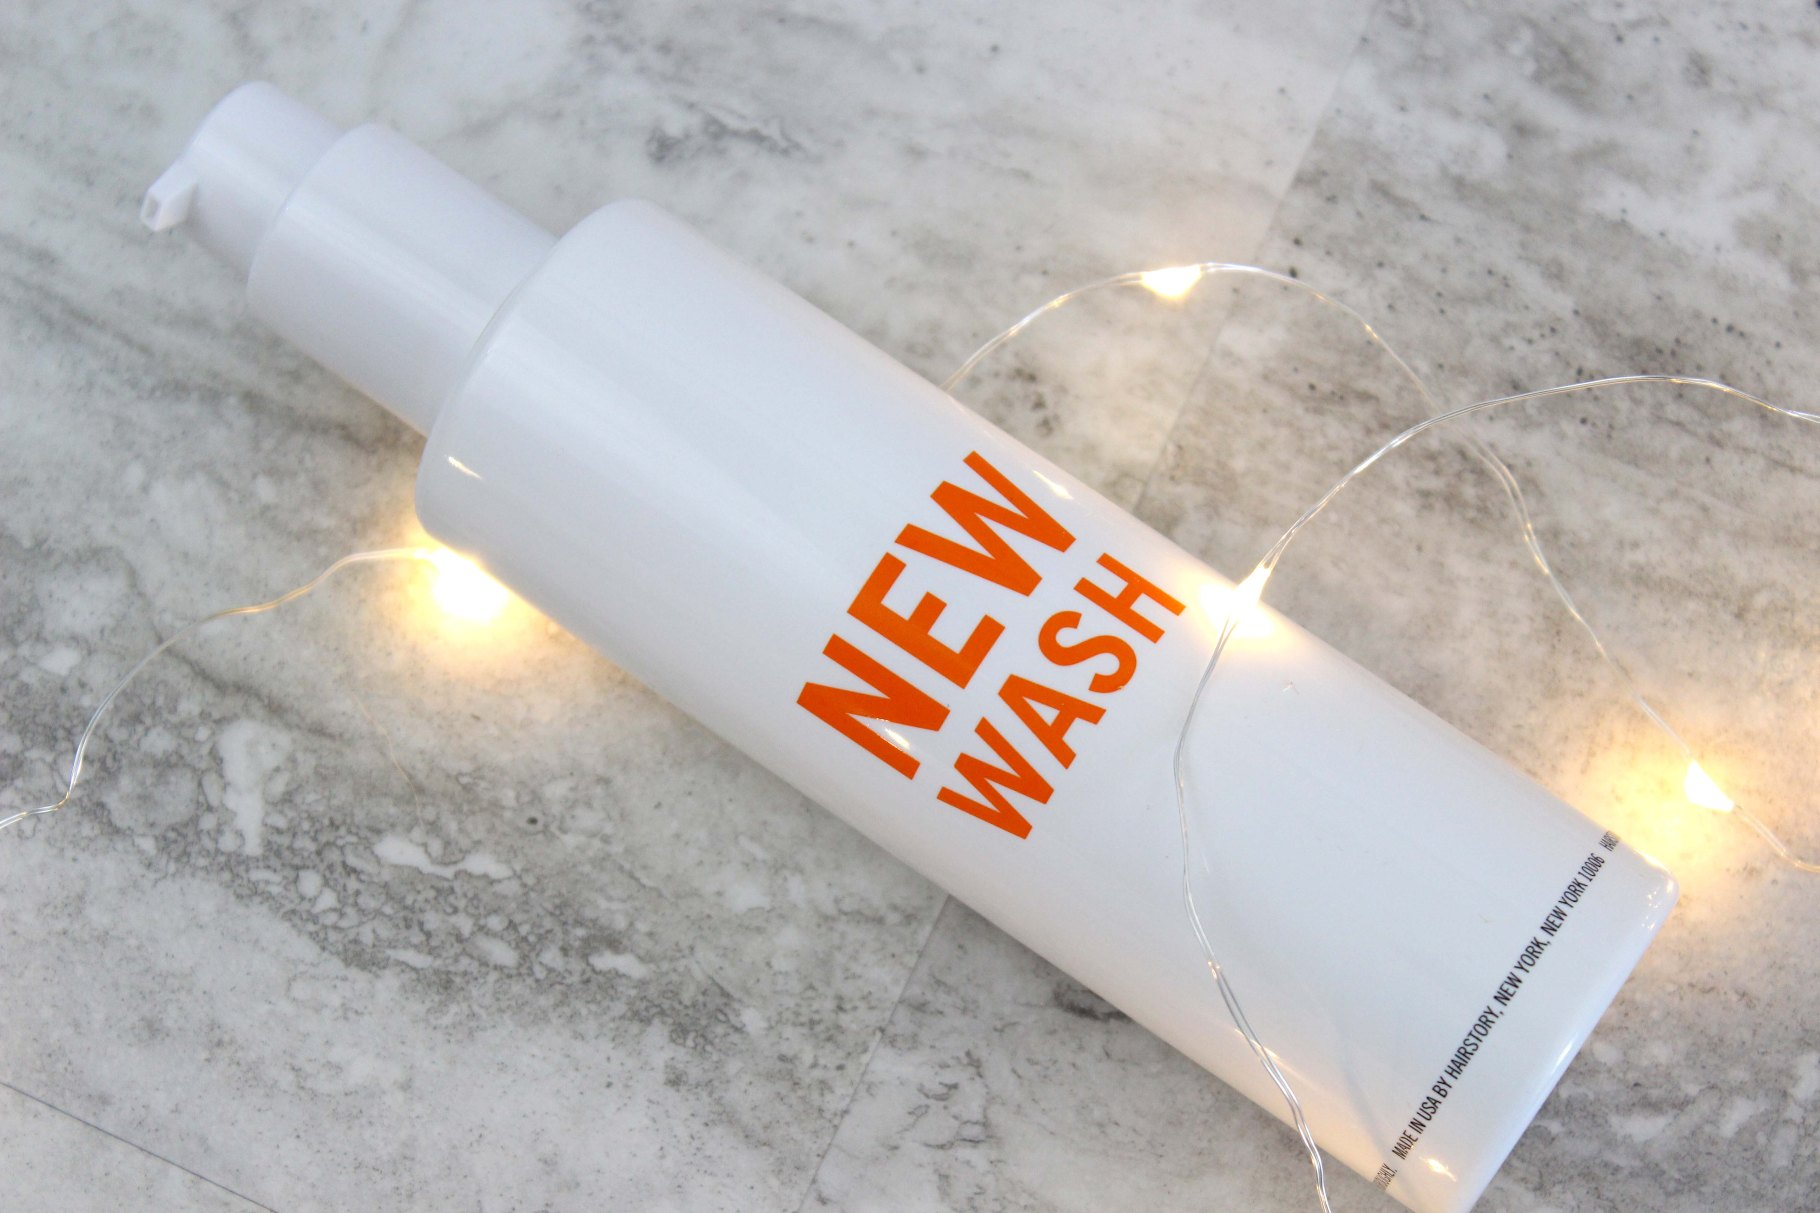 New Wash by Hairstory | Worth the Splurge?